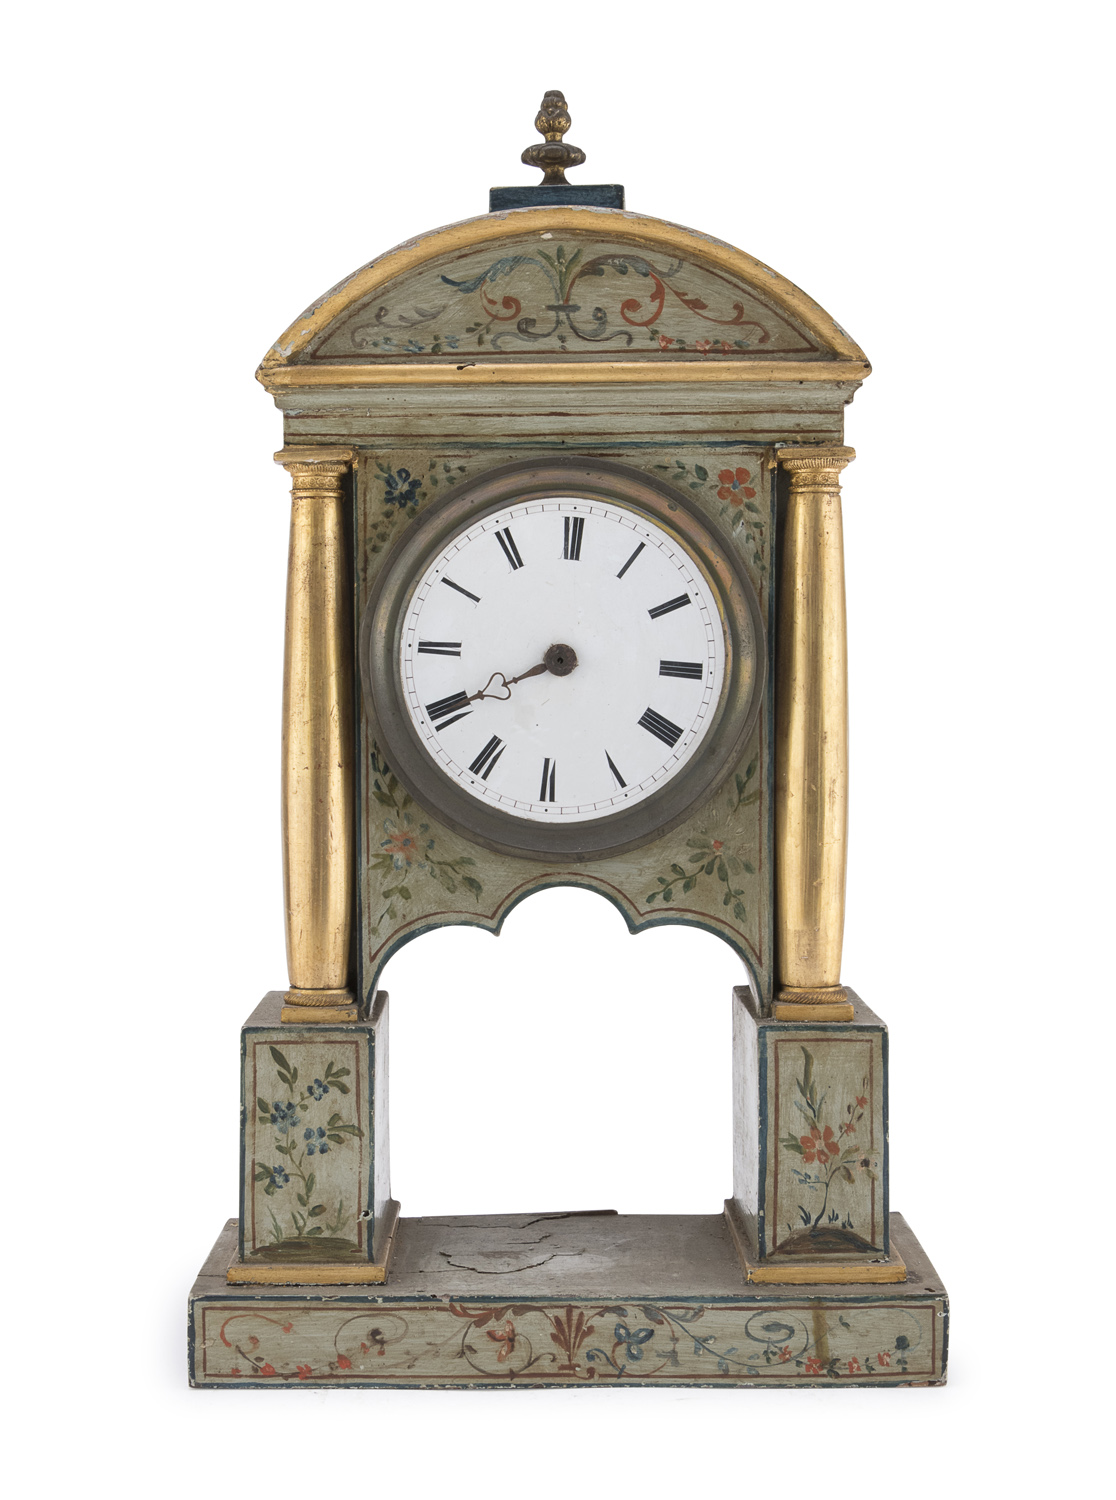 TABLE CLOCK CASE PROBABLY MARCHE EARLY 19th CENTURY